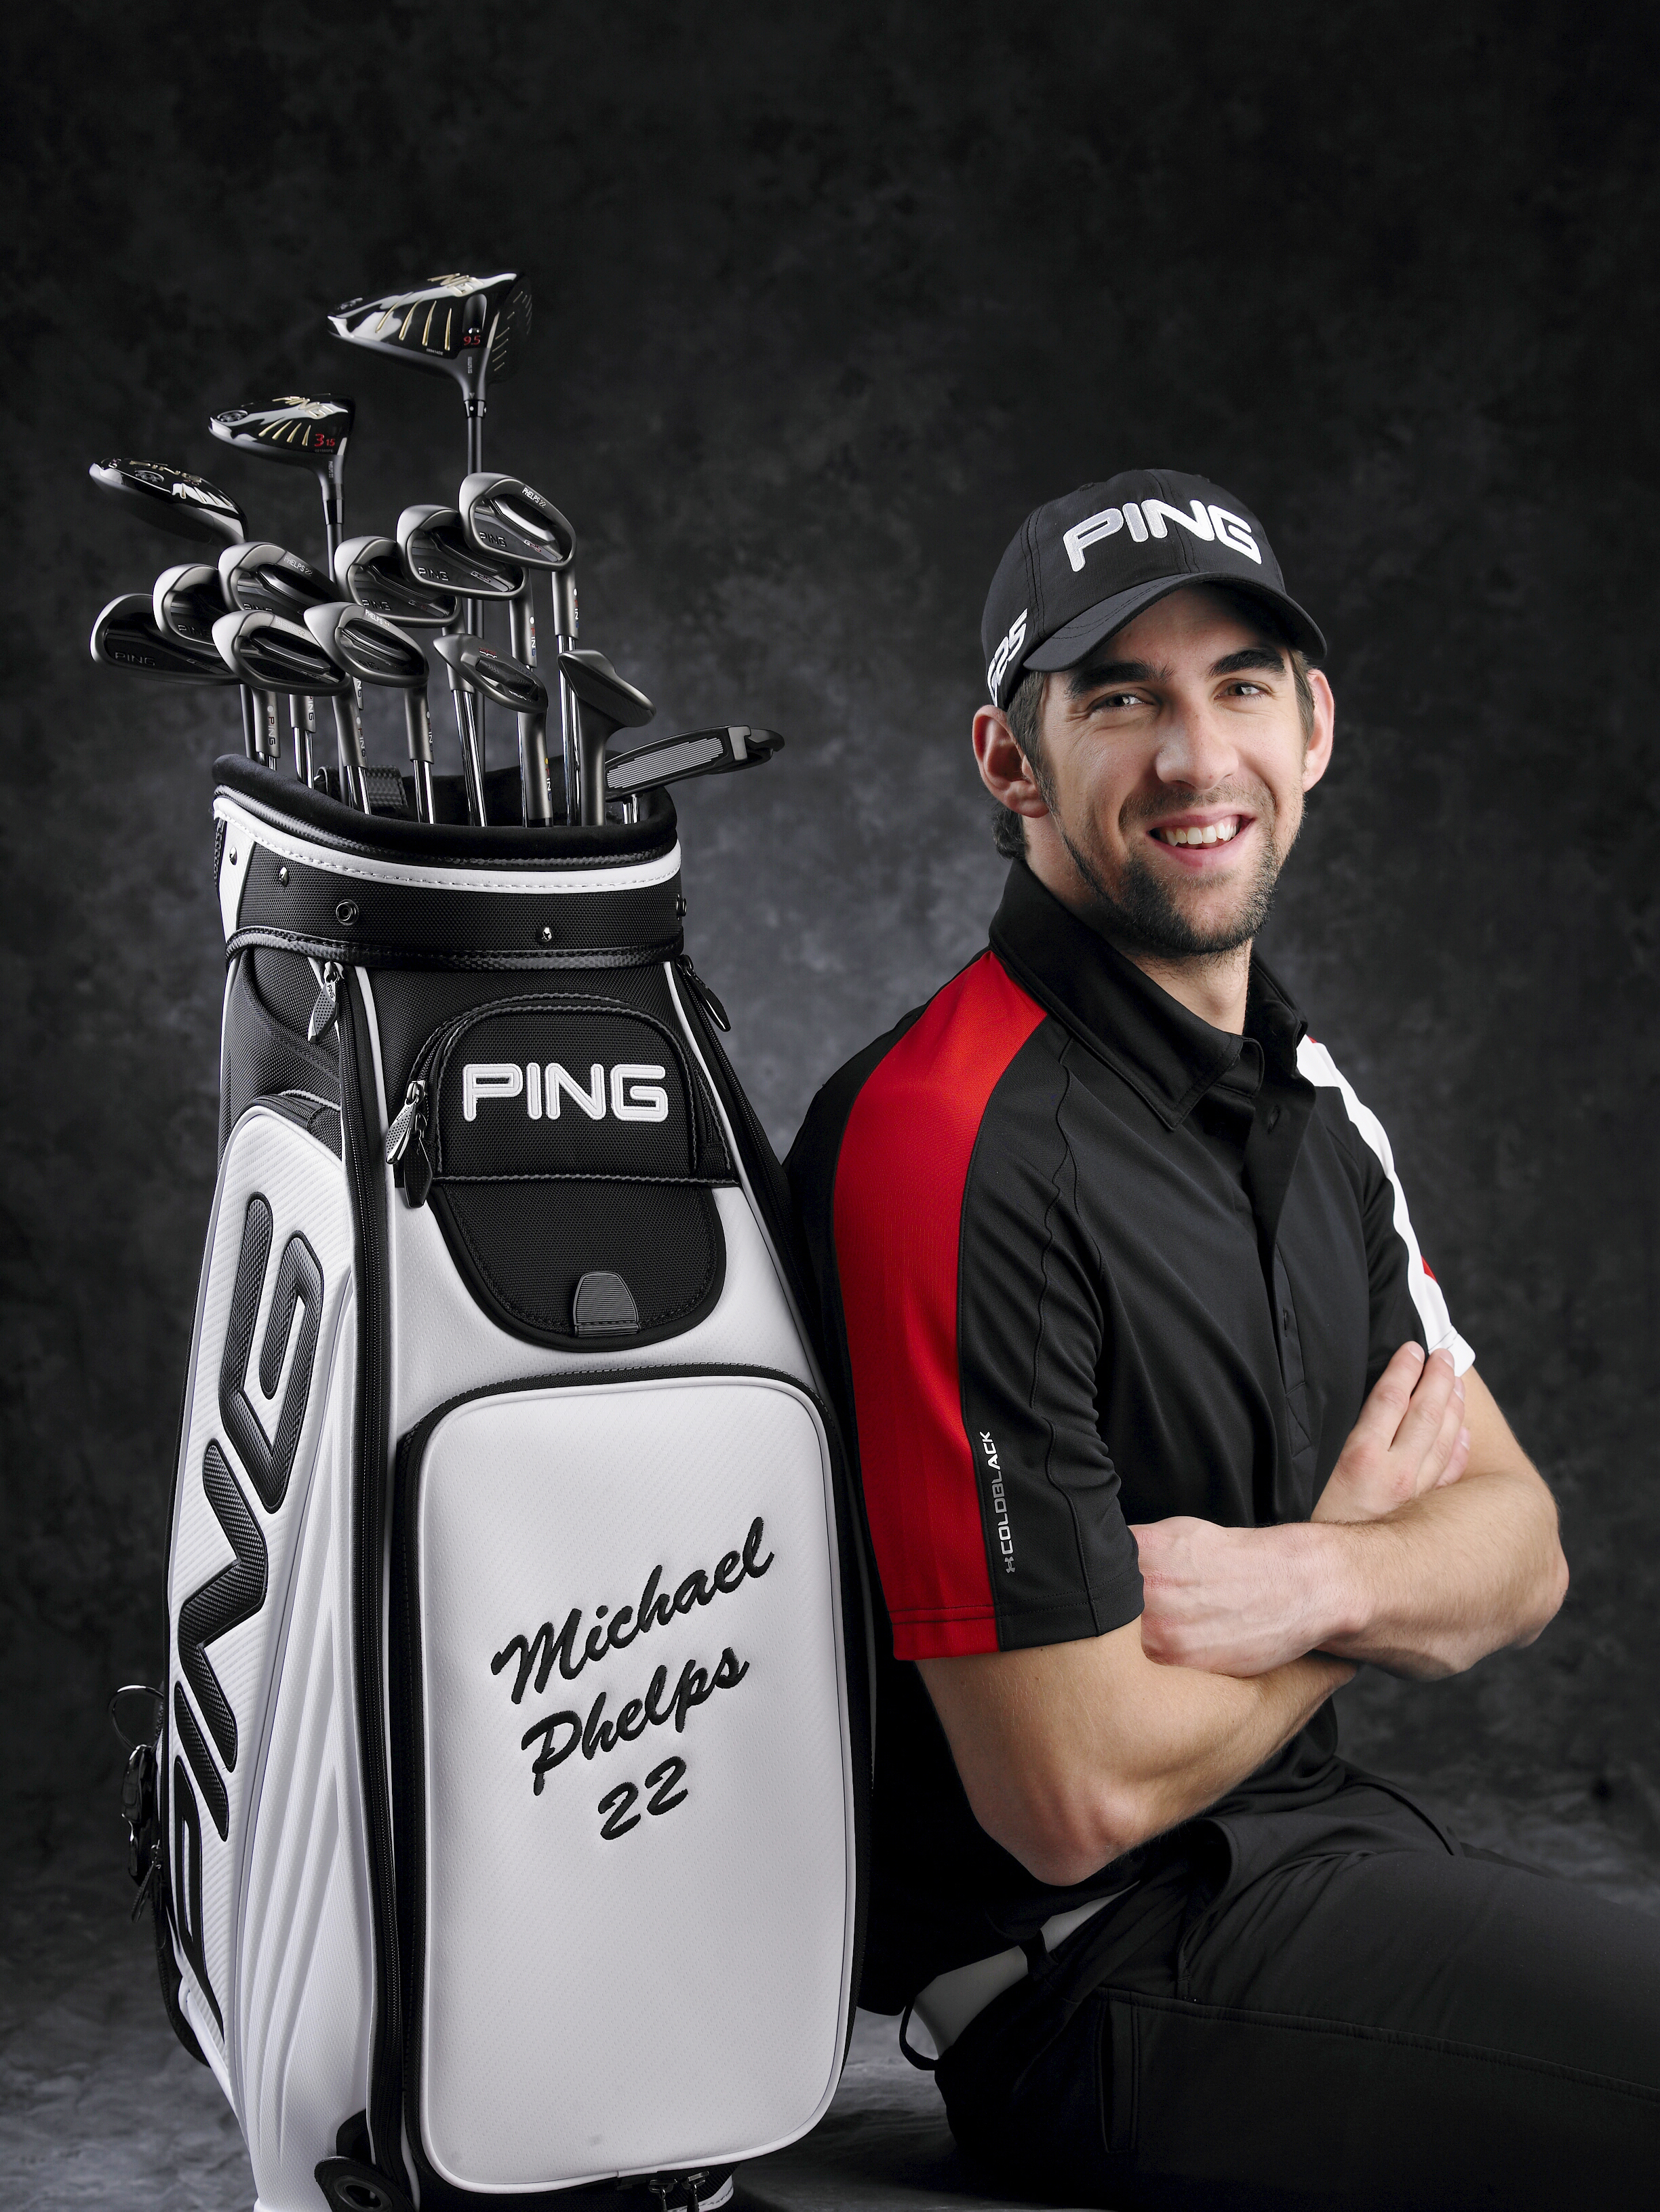 Michael Phelps with his Ping staff bag.